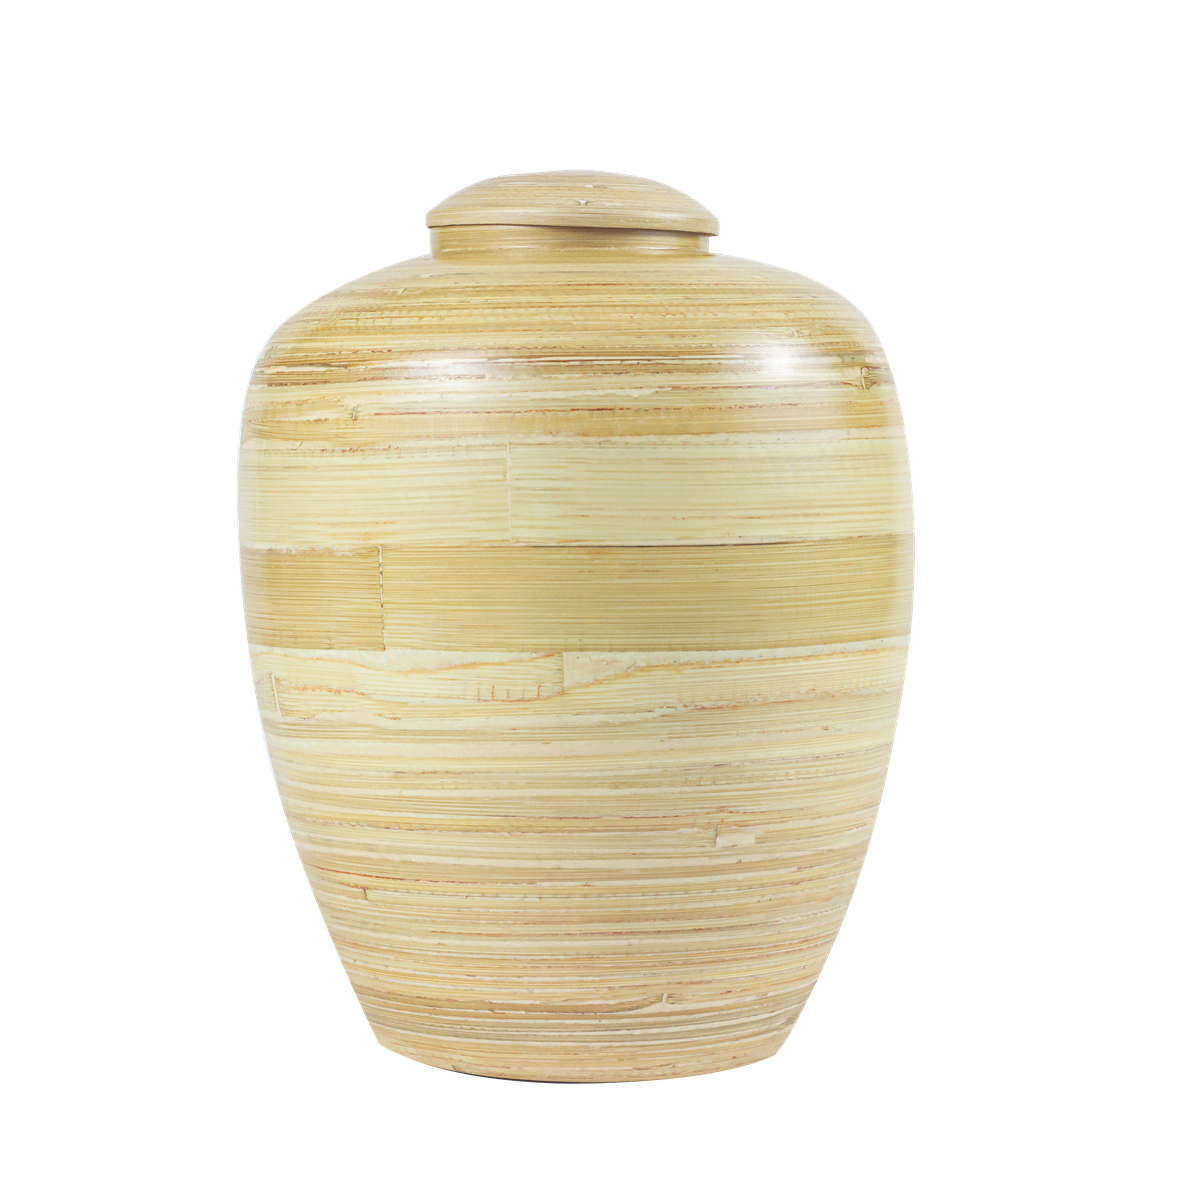 Kootenay Environmental Bamboo Urn